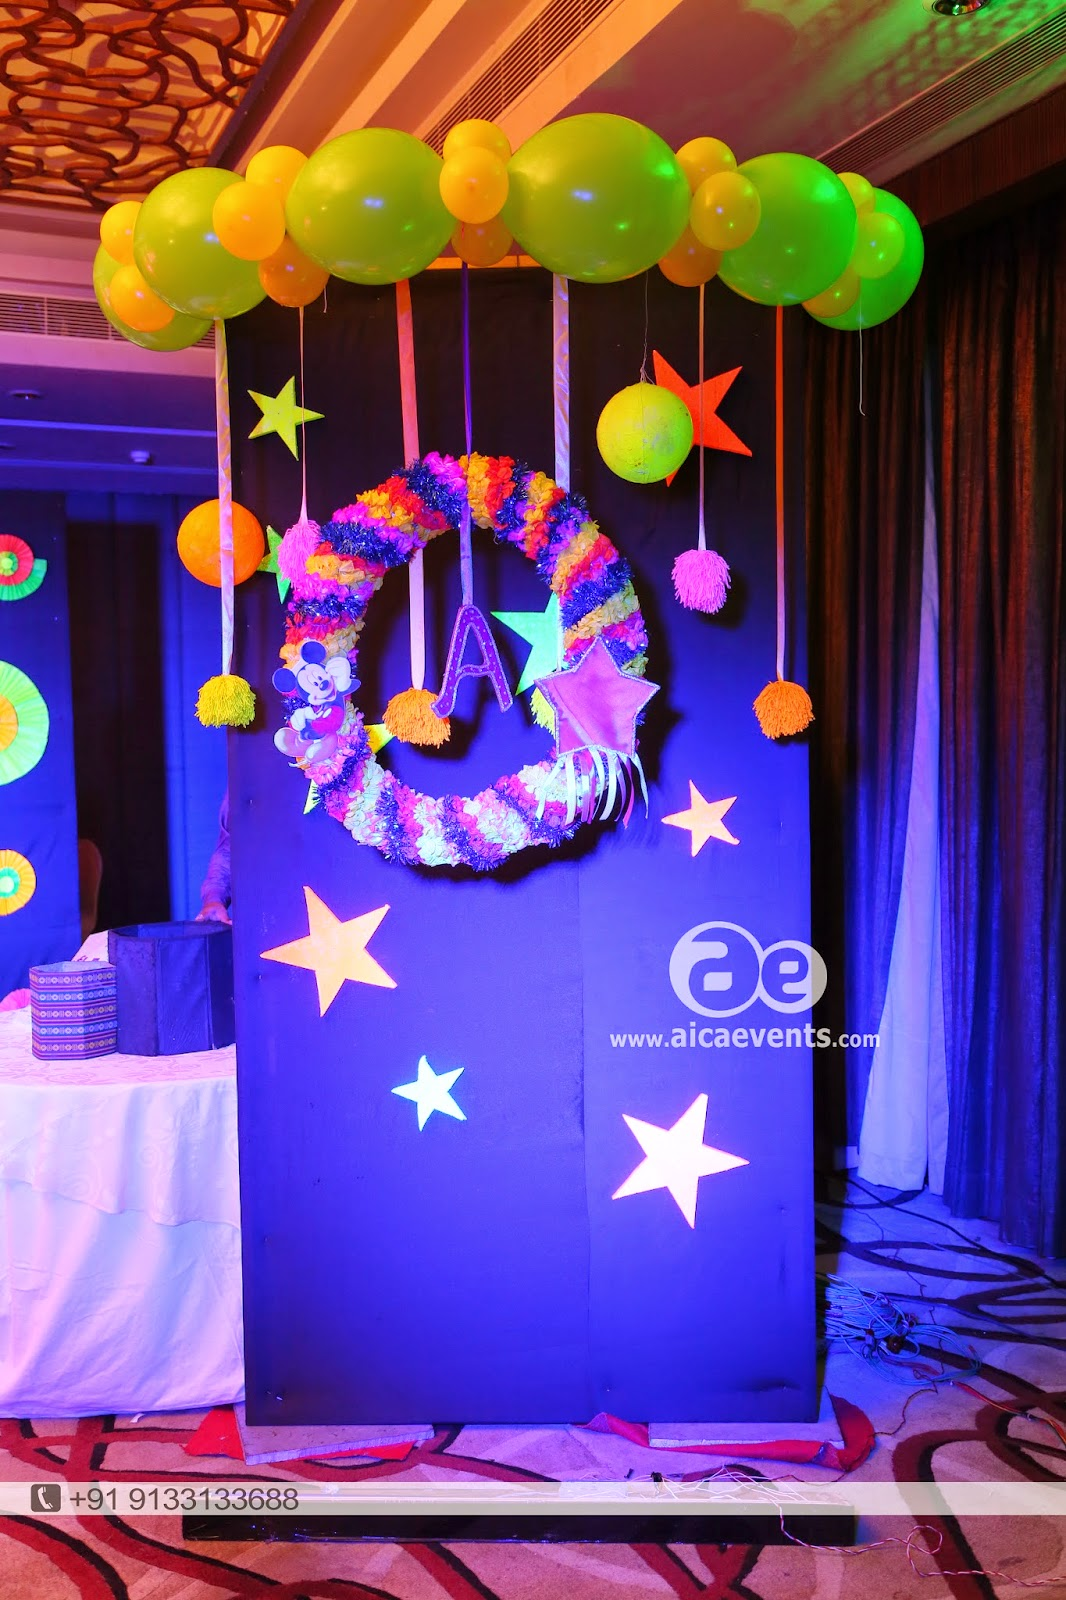 Aicaevents balloon wall stage backdrop decoration for Balloon decoration for stage